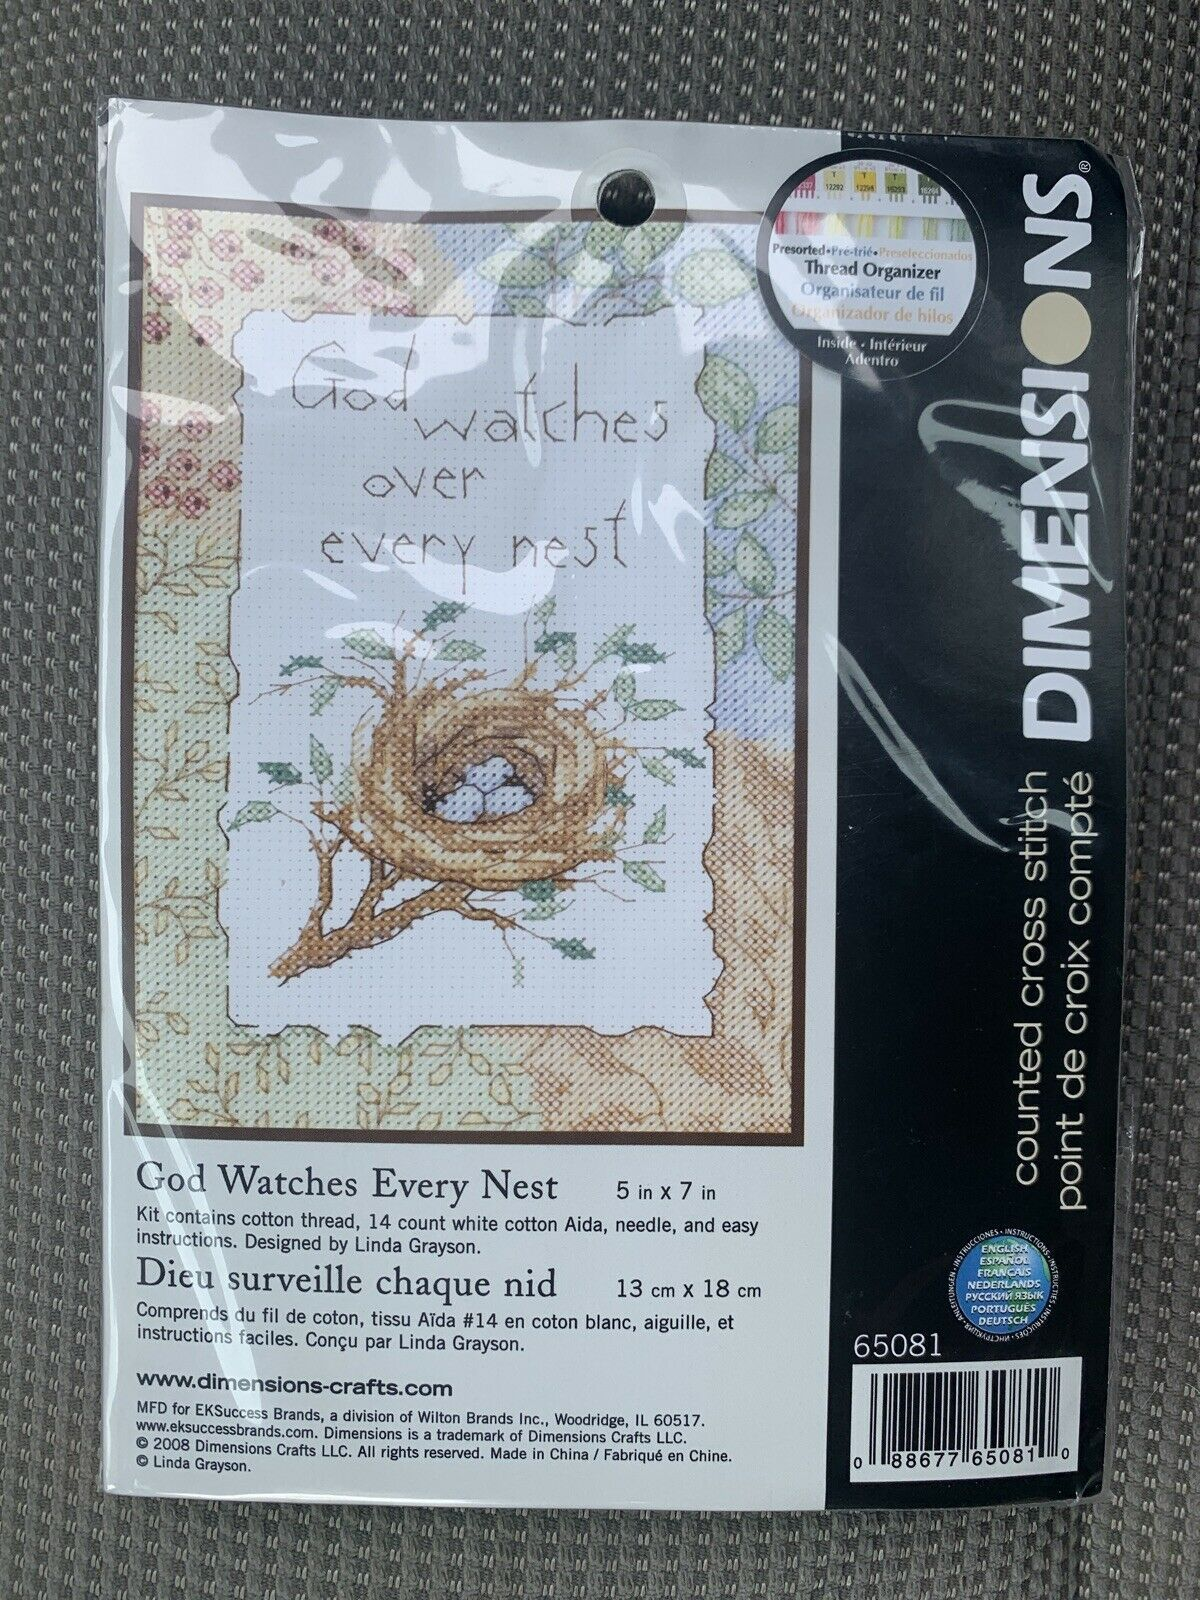 God Watches Every Nest Mini Counted Cross Stitch Kit 2008 Dimensions 65081 USA - $12.99